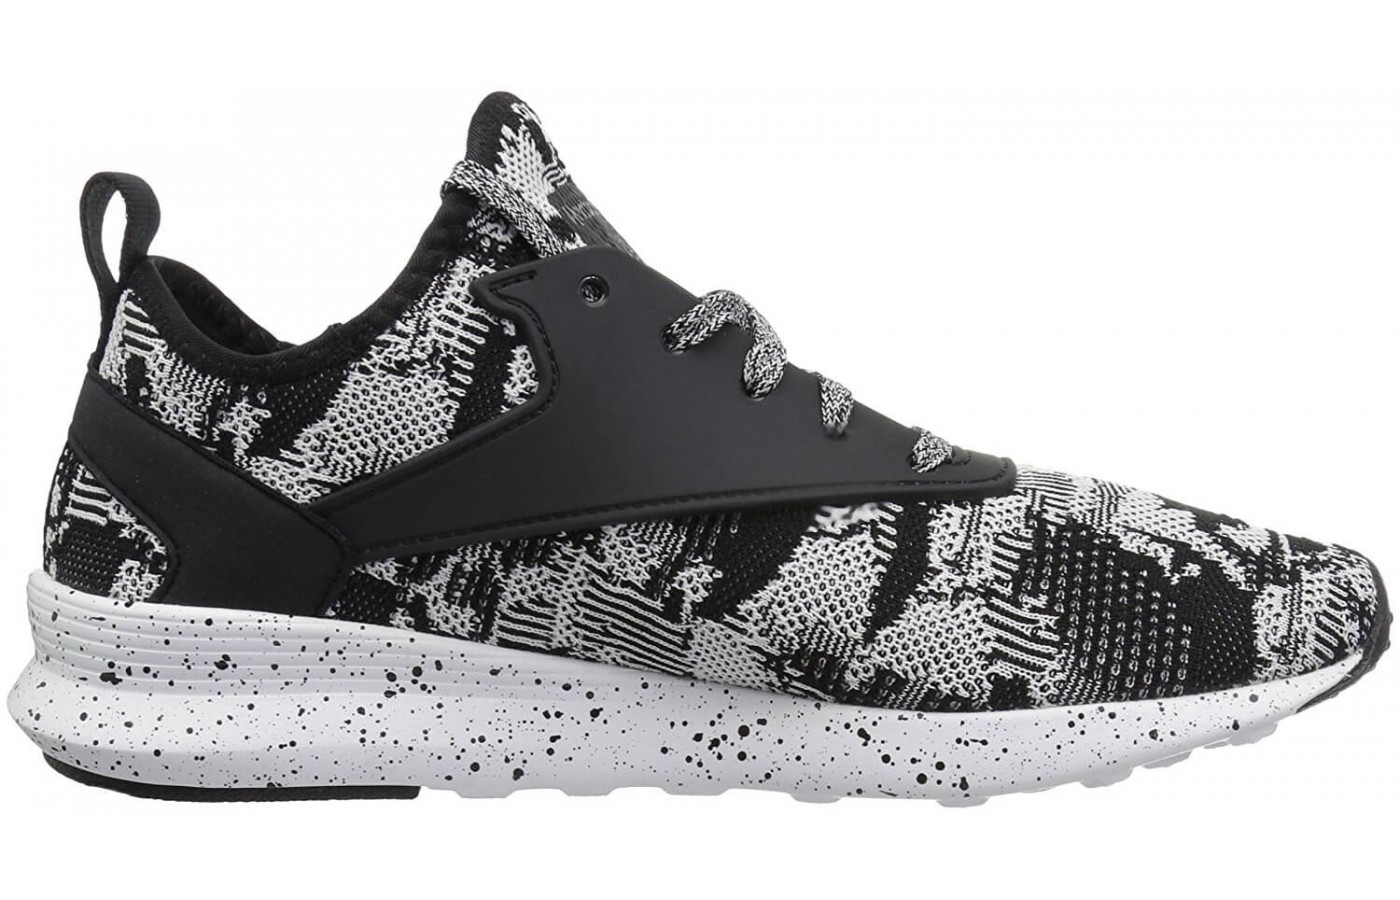 Some extra midfoot stability is provided on the Reebok Zoku Runner to help with overpronation.